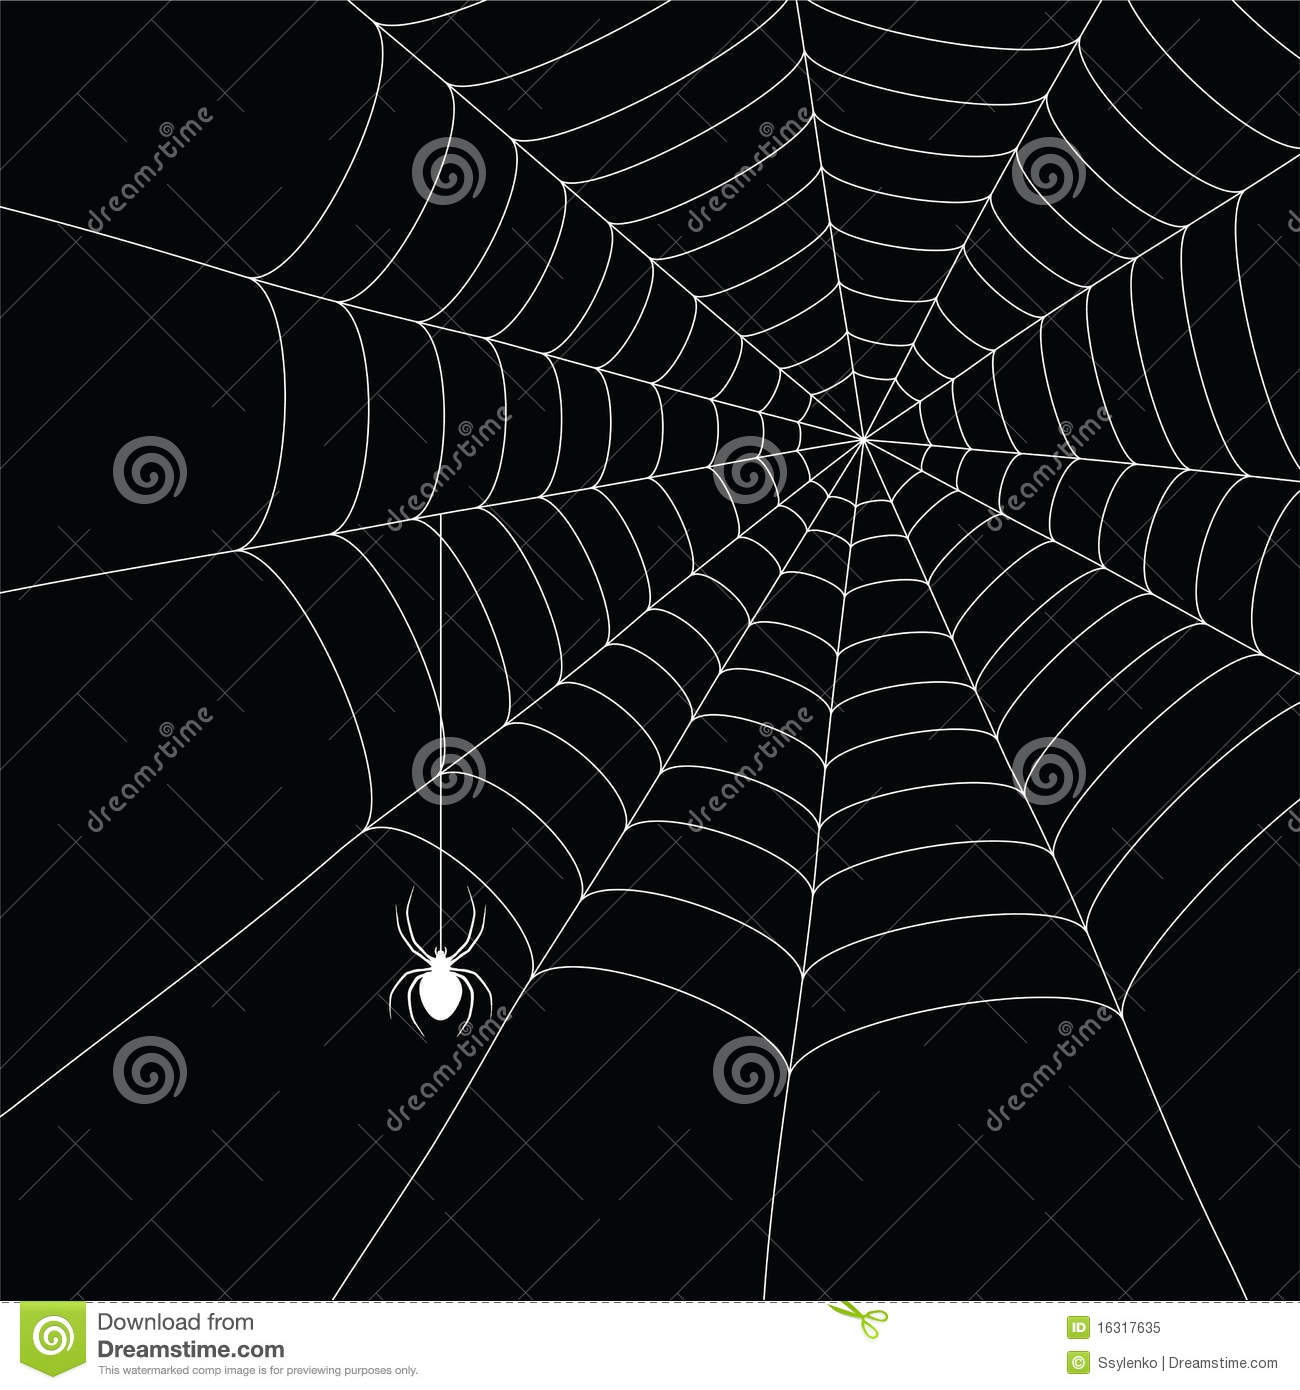 white spider and spider web royalty free stock photo